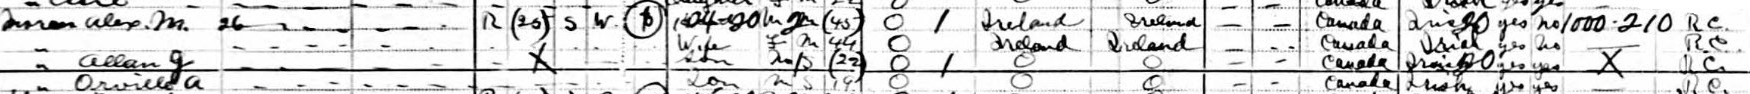 Alexander Moran household, 1921 census of Canada, Ontario, Ottawa St Georges Ward, p. 3, lines 33-36.